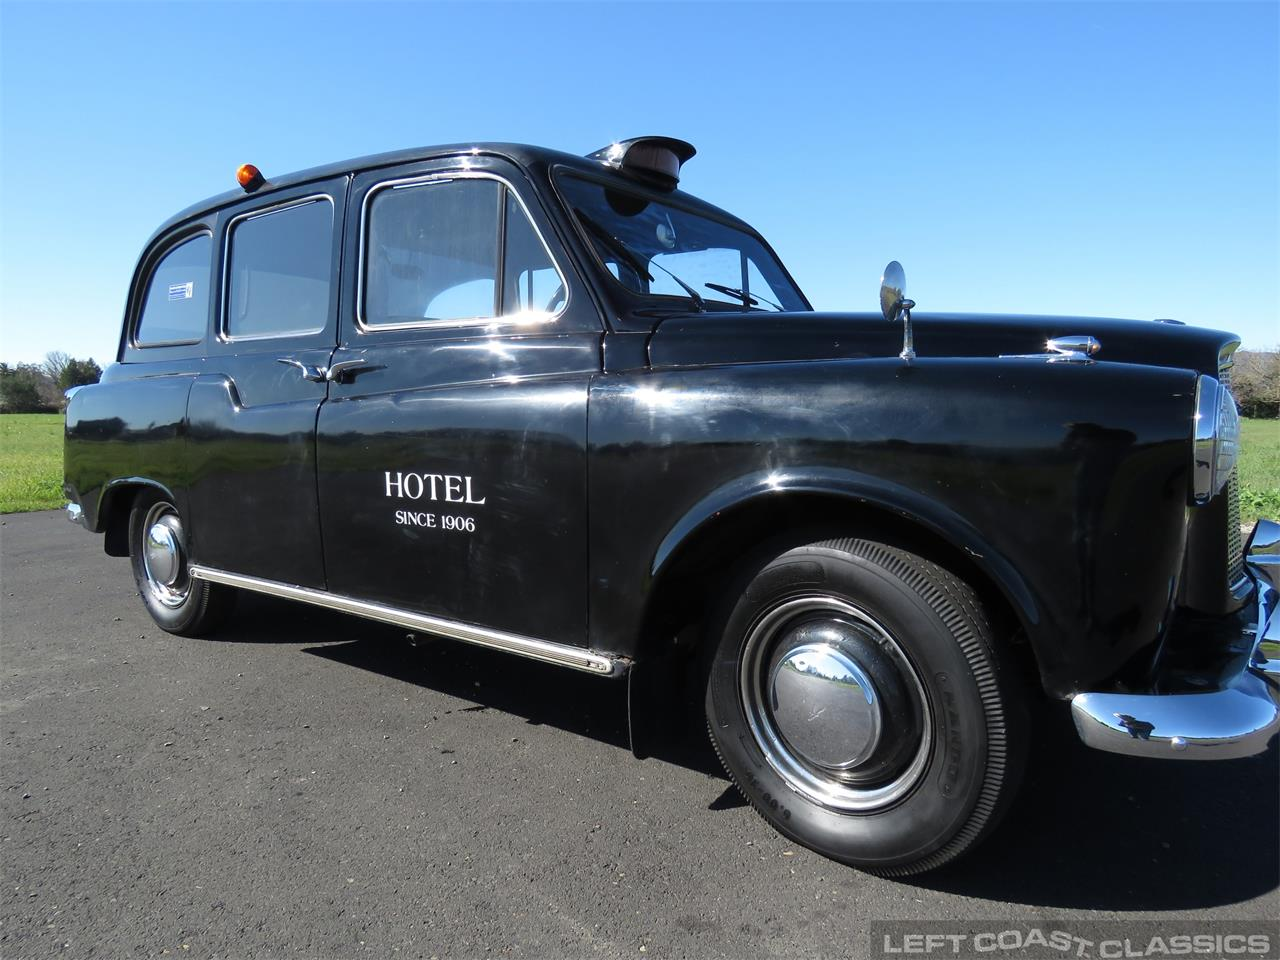 Large Picture of 1967 Austin FX4 Taxi Cab located in California - $12,500.00 Offered by Left Coast Classics - PKBX